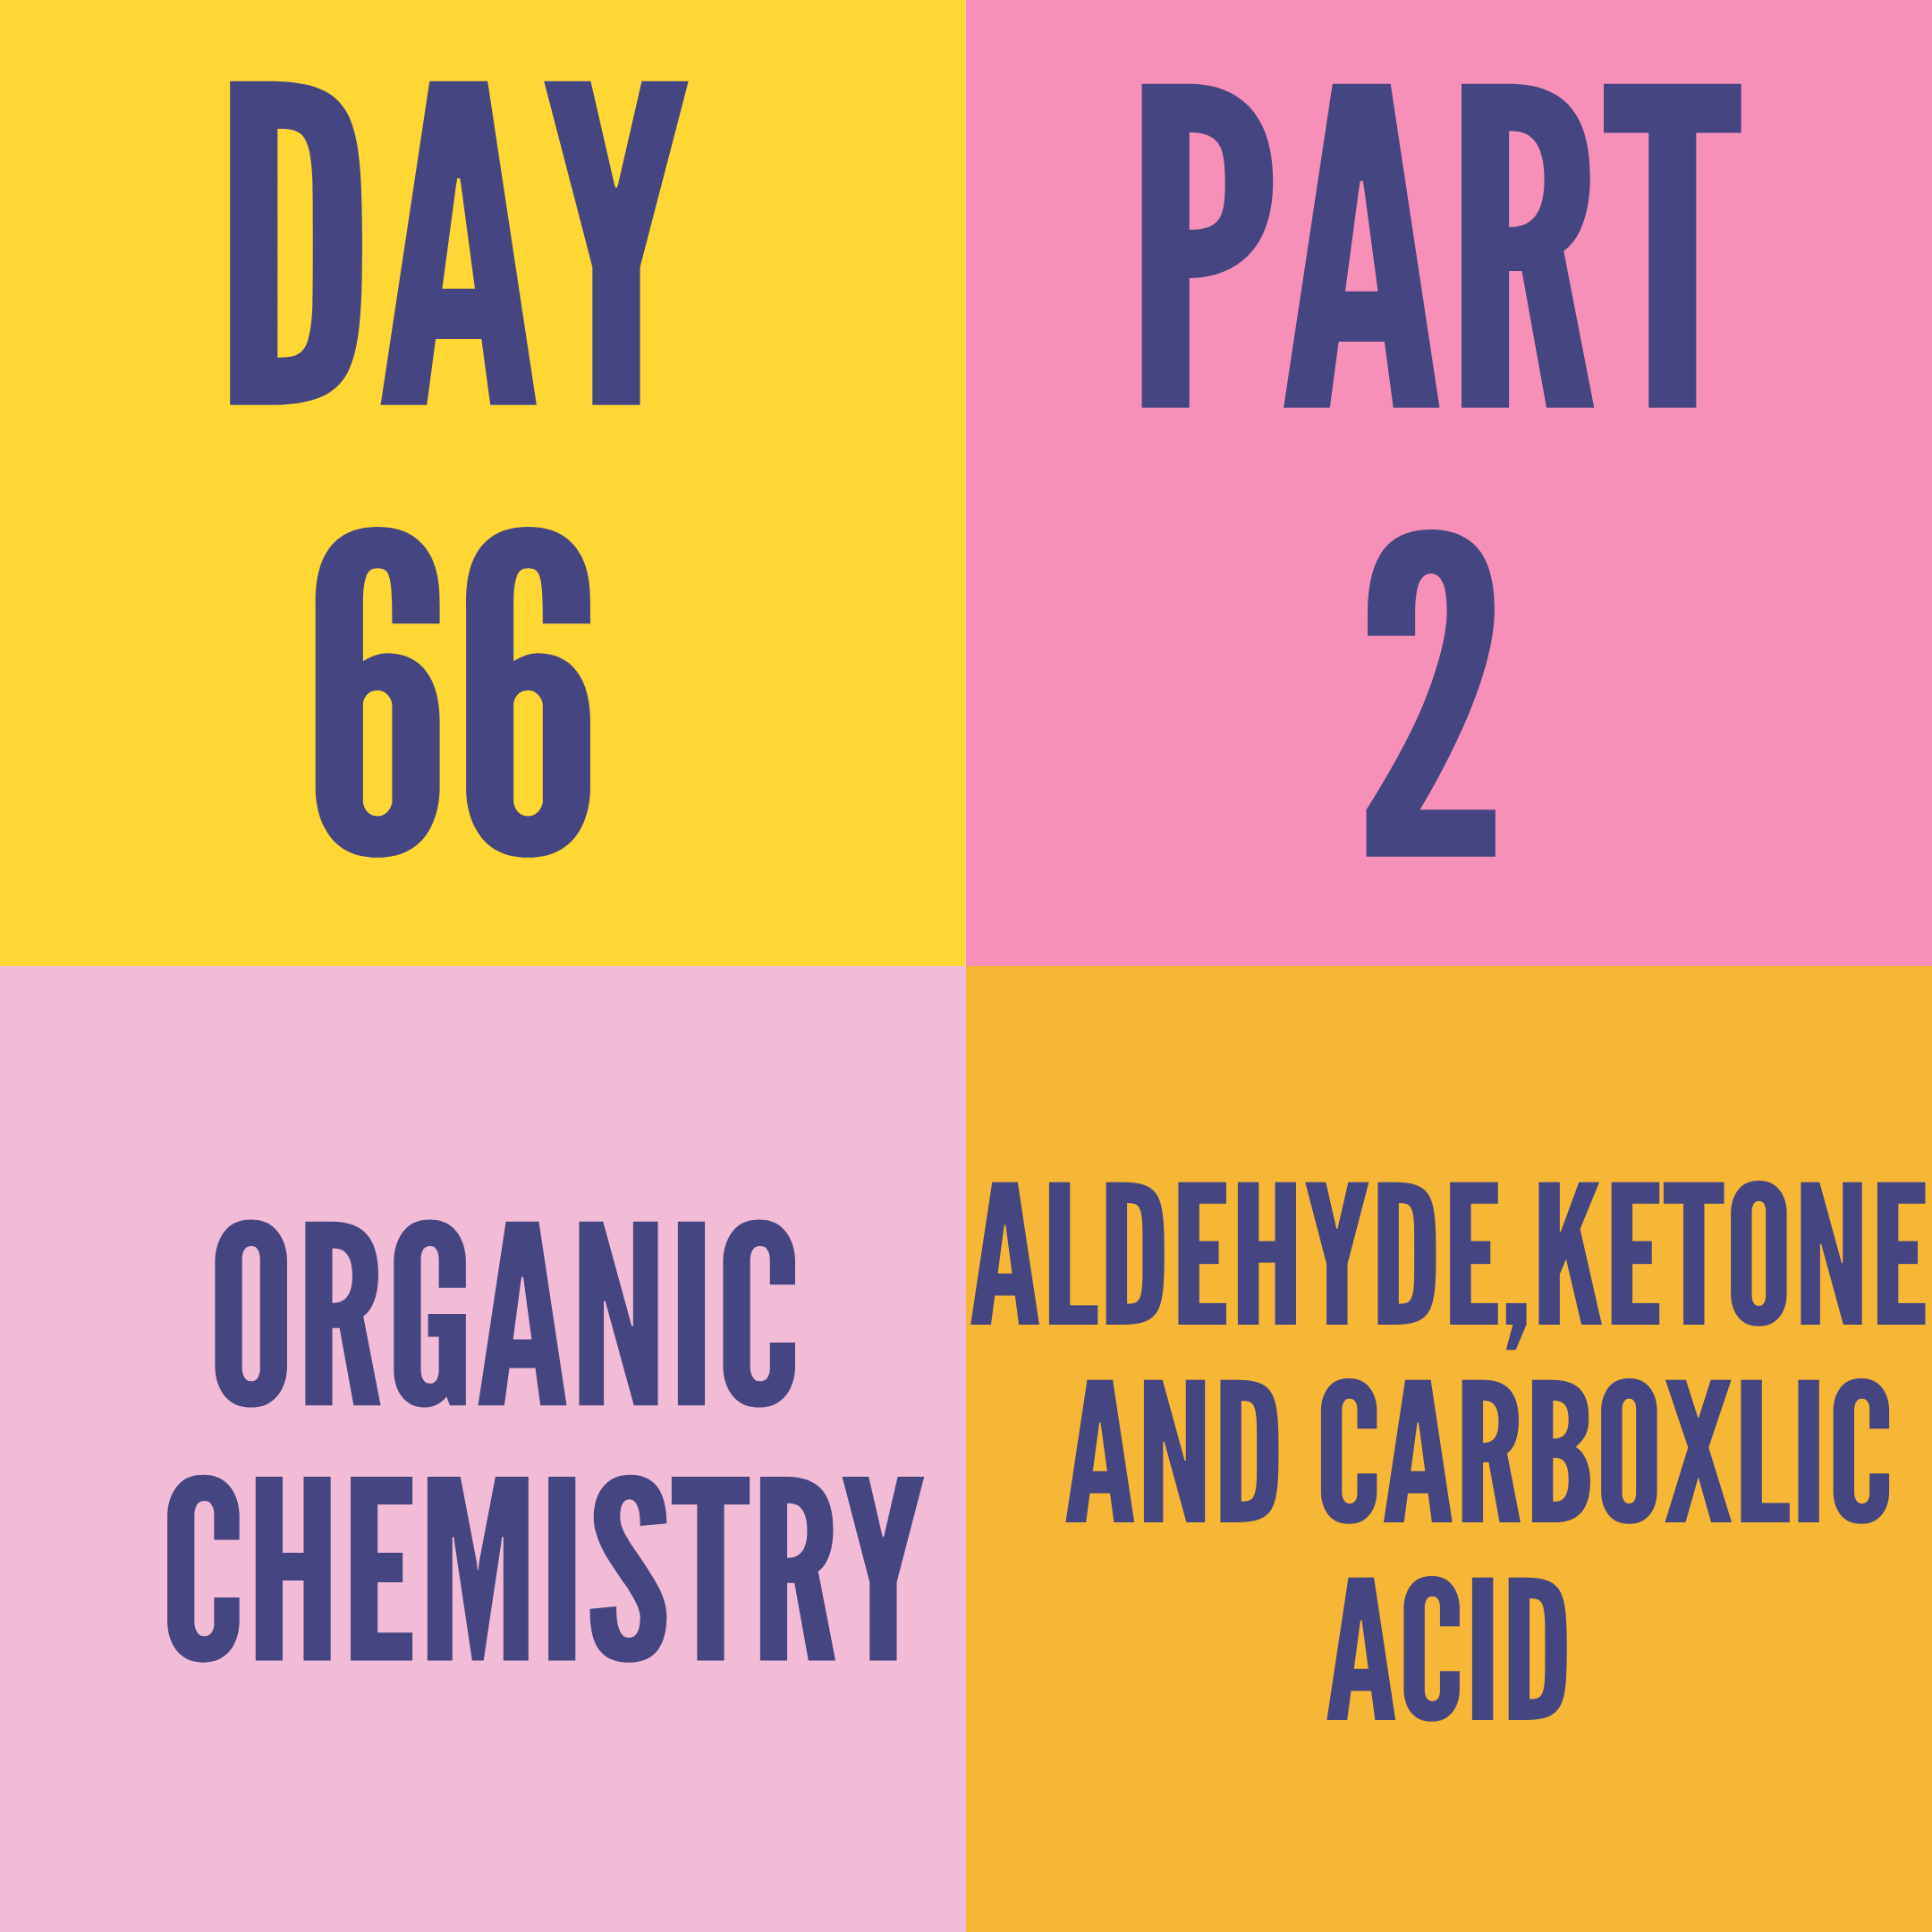 DAY-66 PART-2 ALDEHYDE,KETONE AND CARBOXLIC ACID